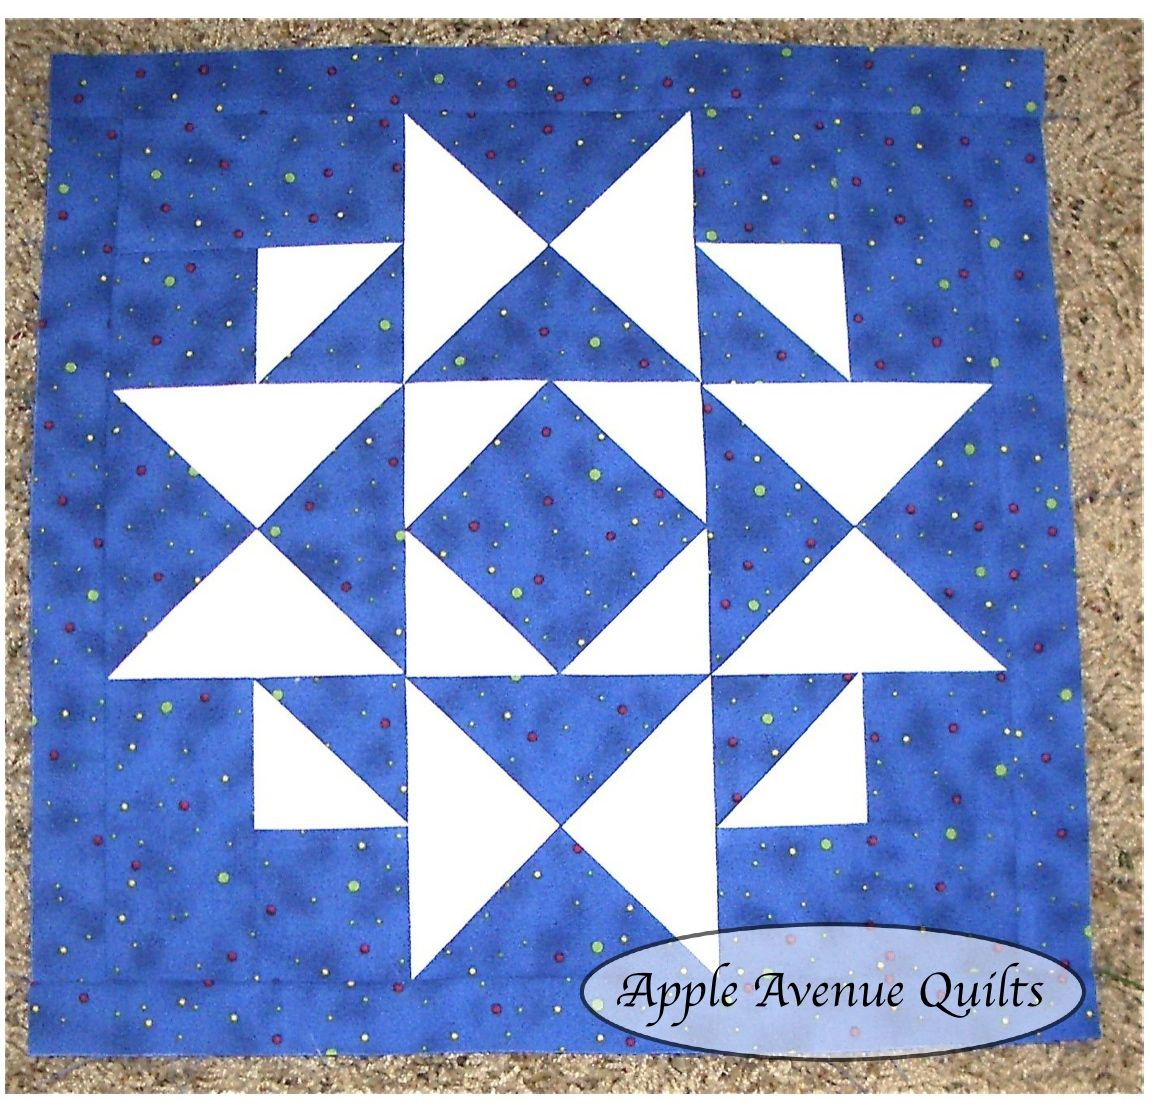 Apple Avenue Quilts: Free Block of the Month: January Blocks and ... : free quilt block of the month - Adamdwight.com